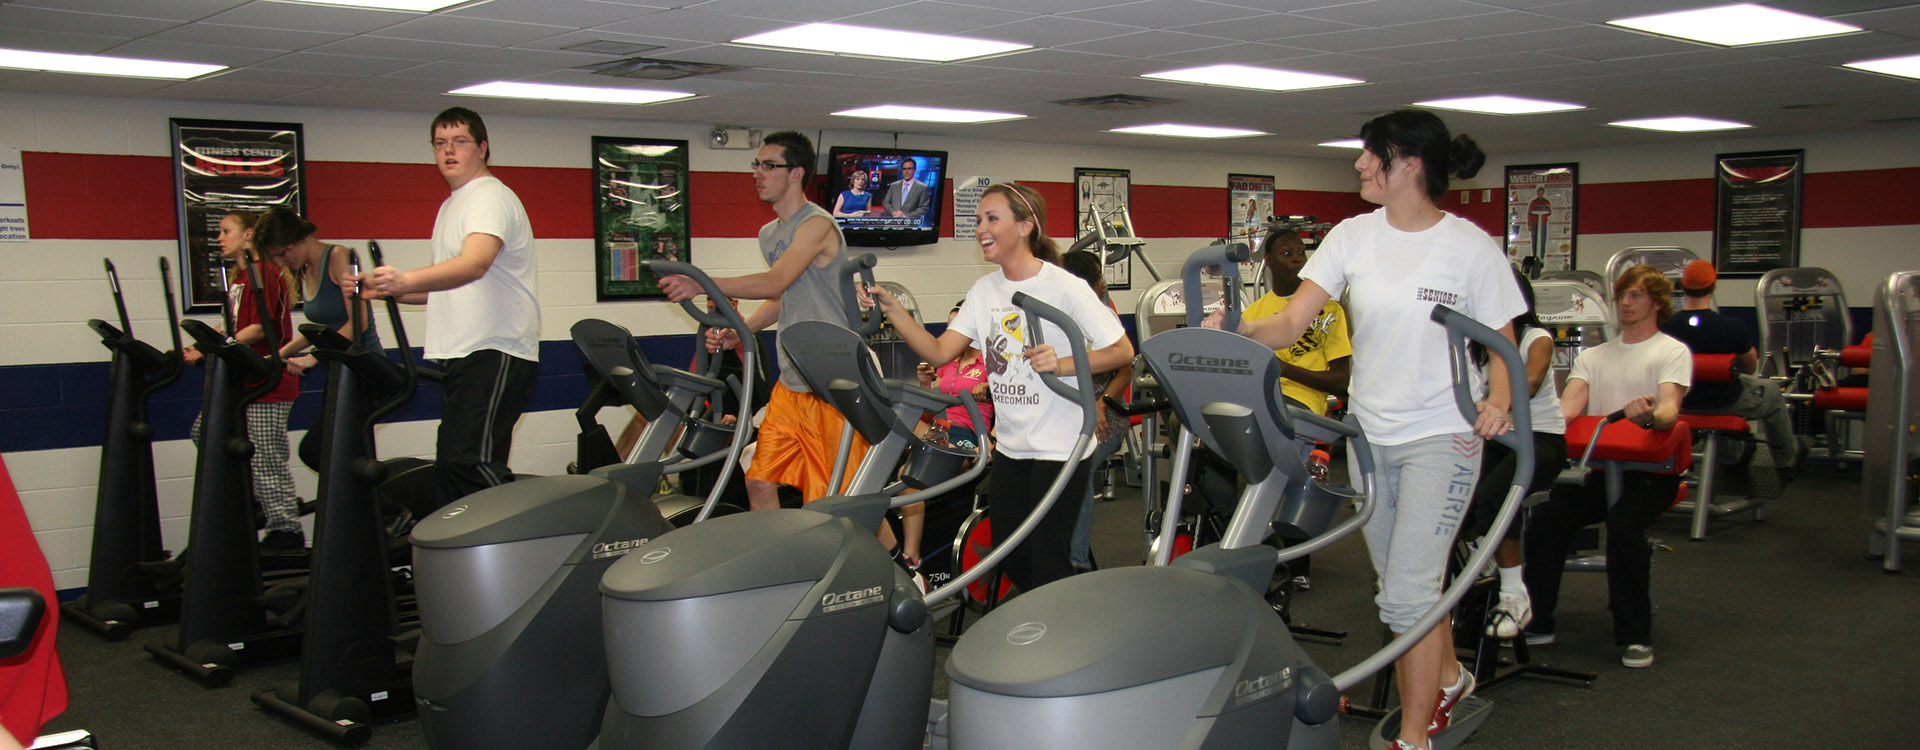 students running on treadmills in the fitness room